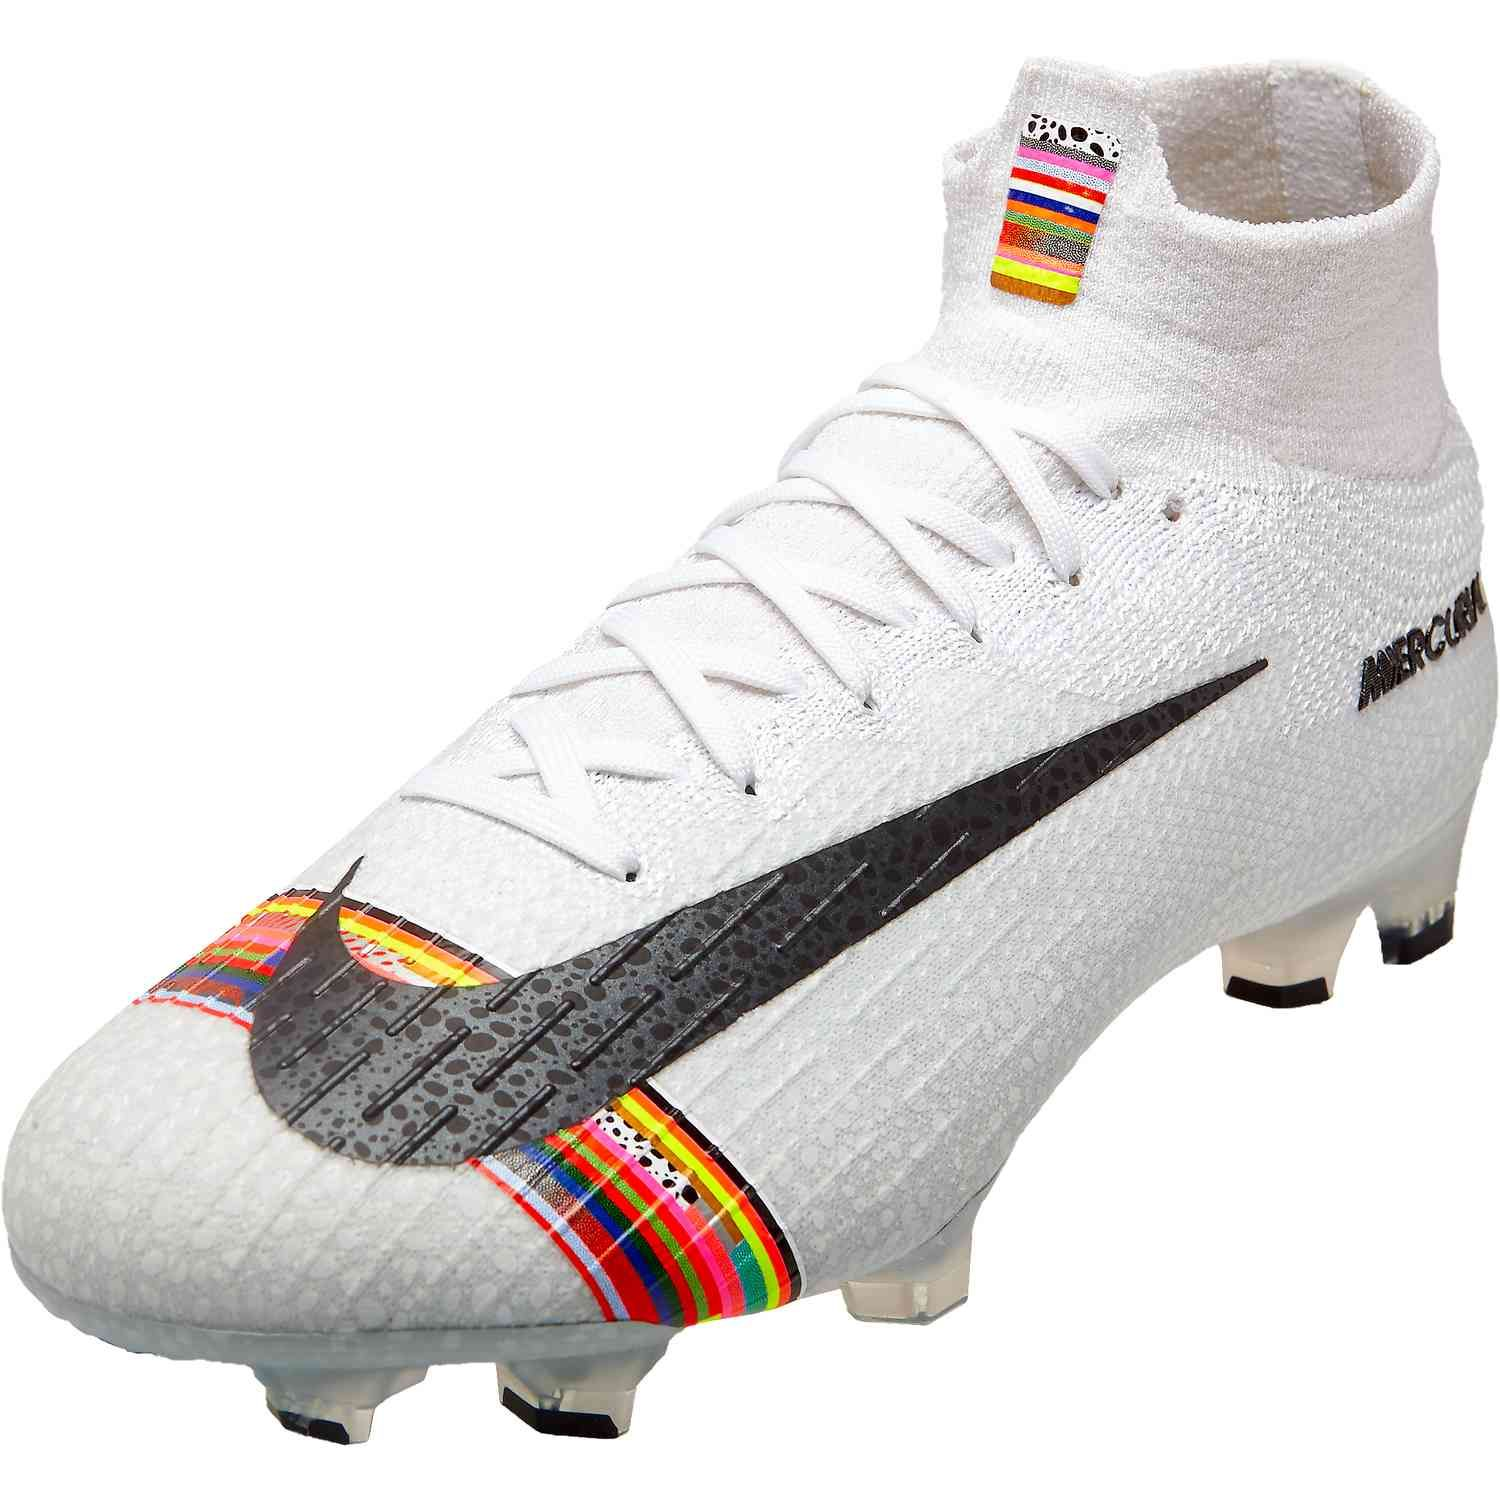 The First Of It S Kind The Nike Mercurial Superfly Vi Elite Fg Soccer Cleats Feature Flyknit For A Fu Nike Football Boots Soccer Cleats Custom Football Cleats